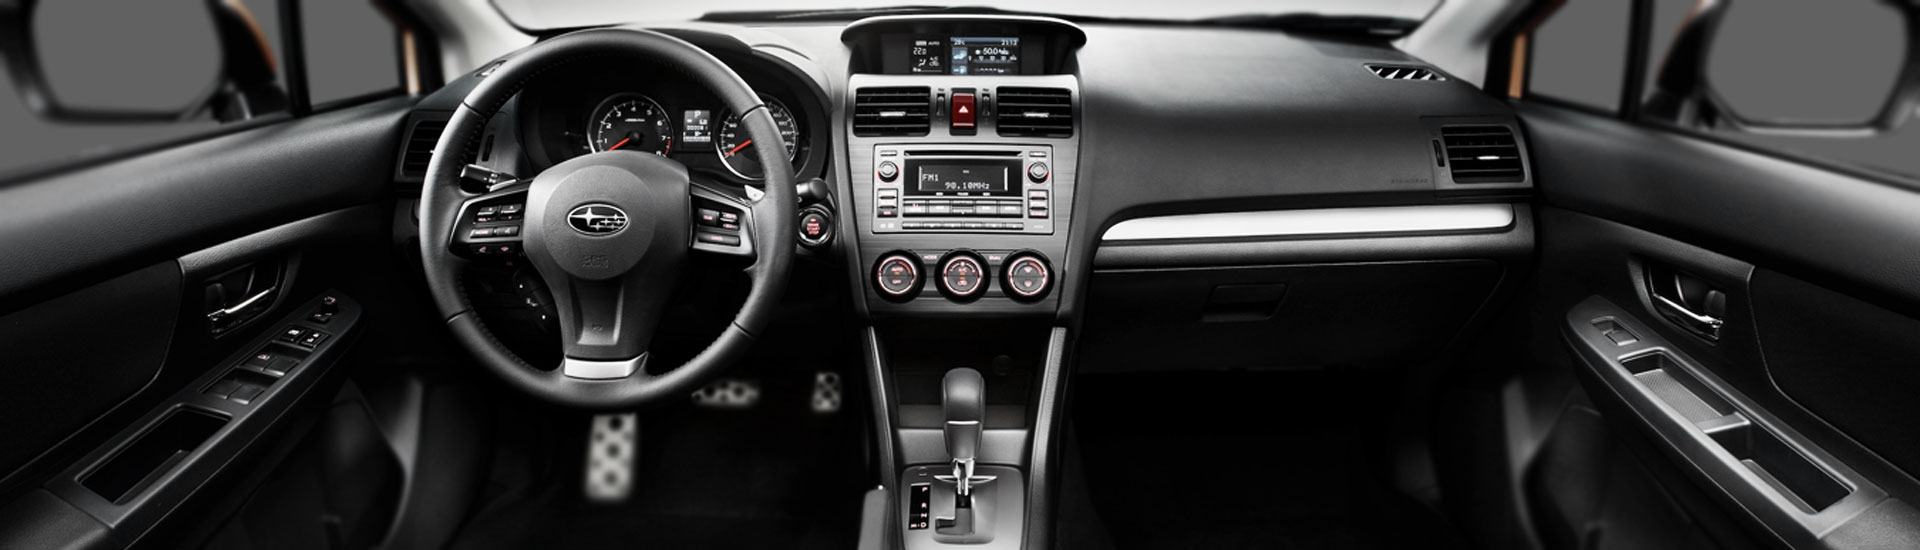 2005 Subaru Impreza Custom Dash Kits